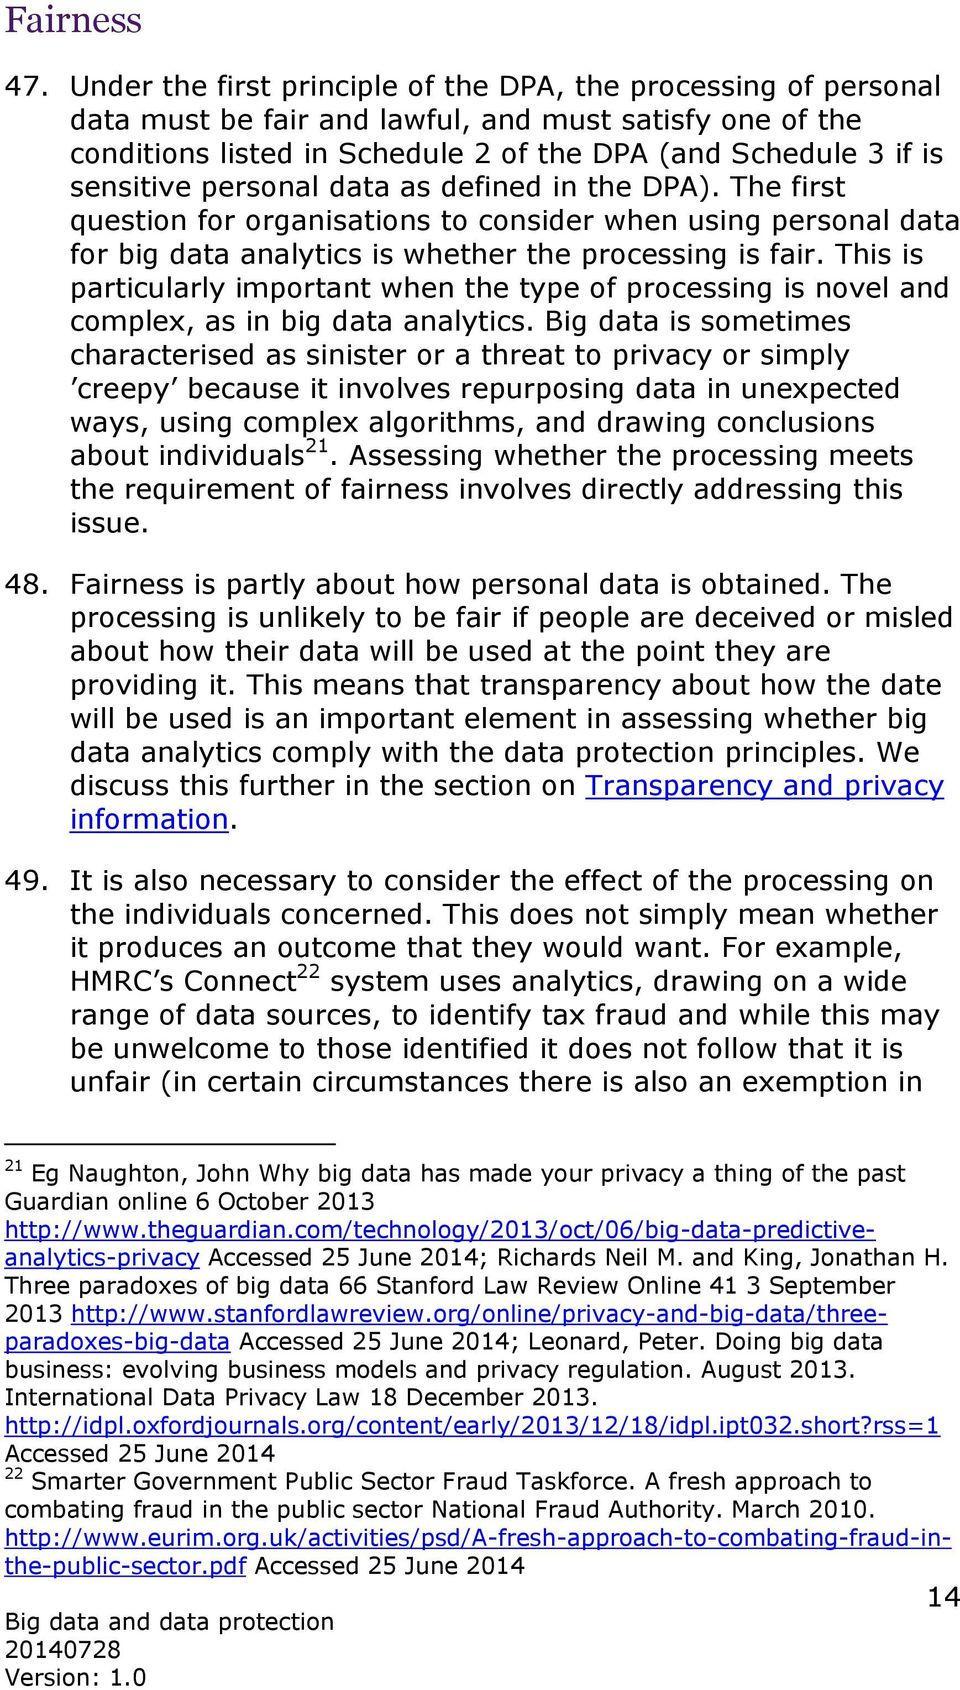 personal data as defined in the DPA). The first question for organisations to consider when using personal data for big data analytics is whether the processing is fair.